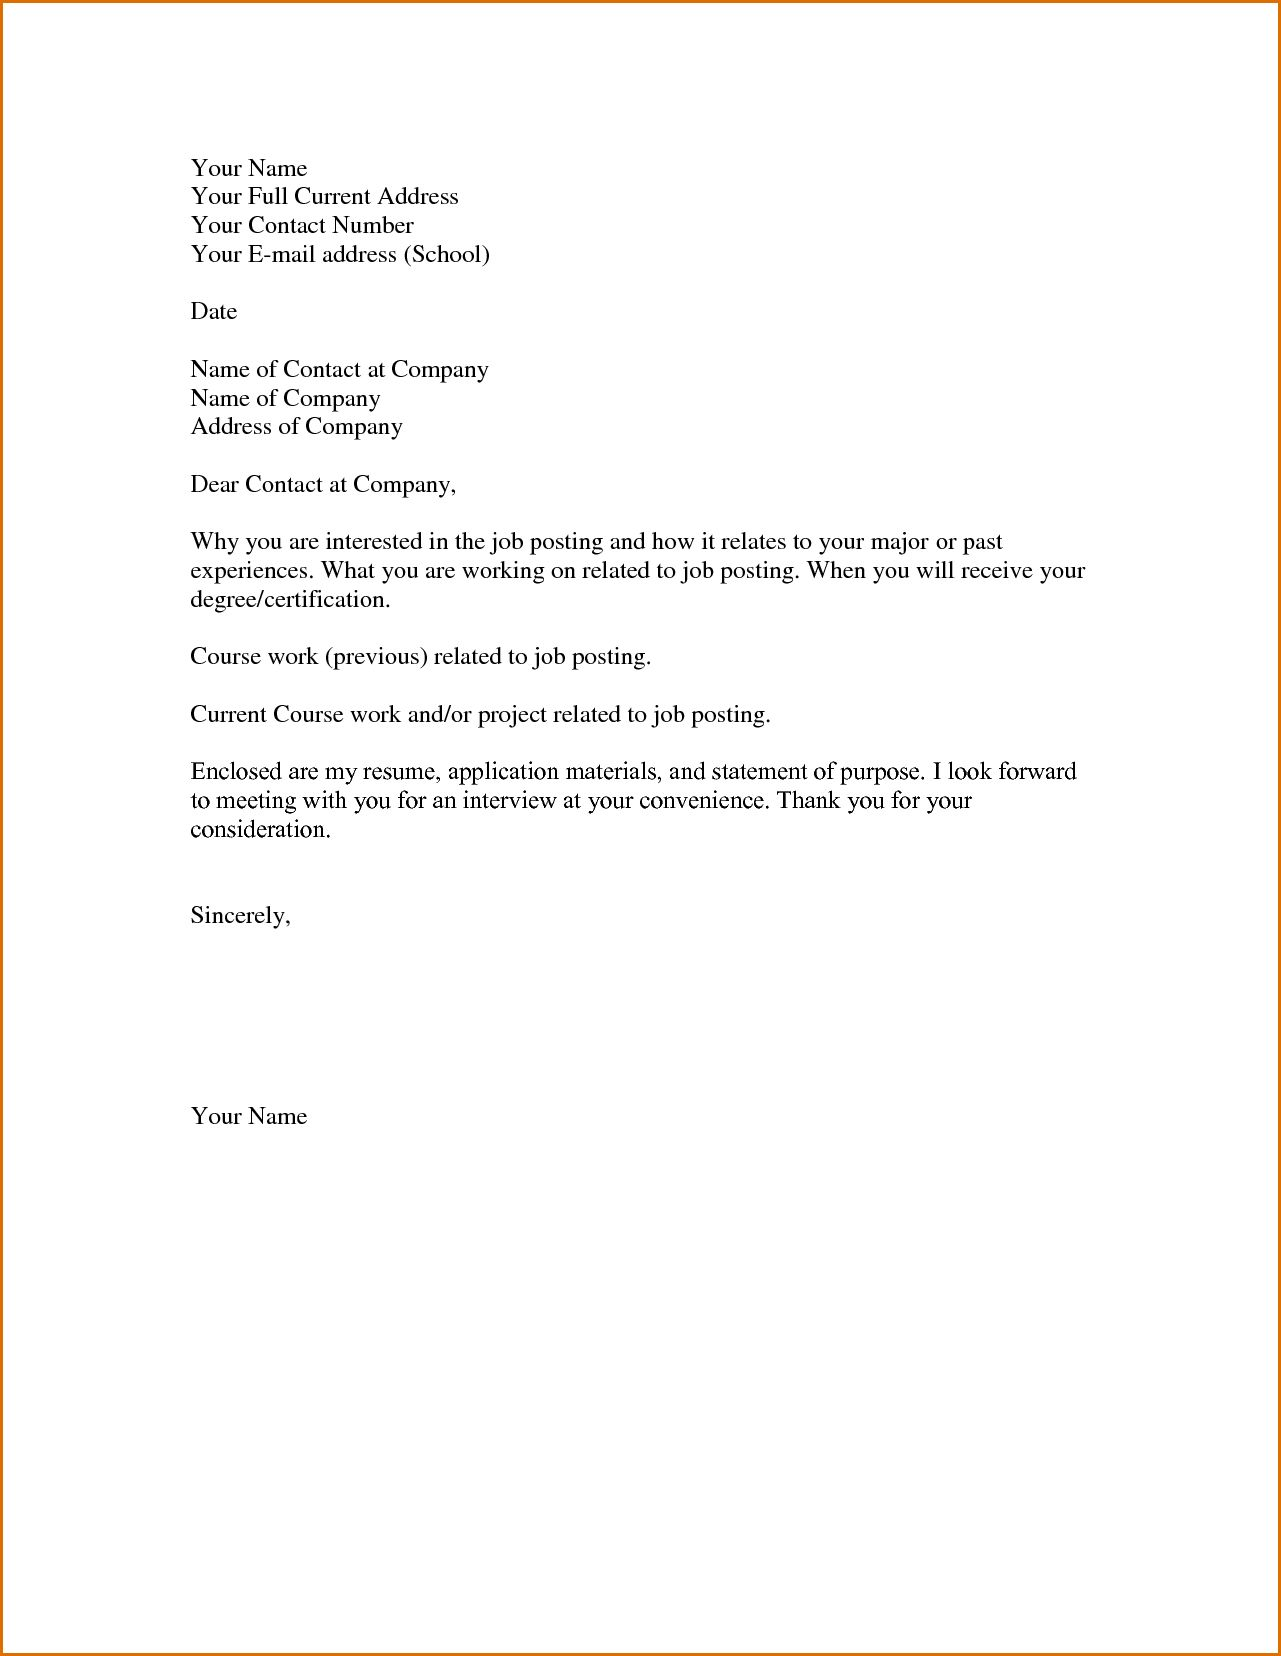 A Simple Cover Letter Example For You To Base Your Cover Letter From Cv Lettre De Motivation Exemple De Lettre De Motivation Lettre De Motivation Simple Basic cover letter template free